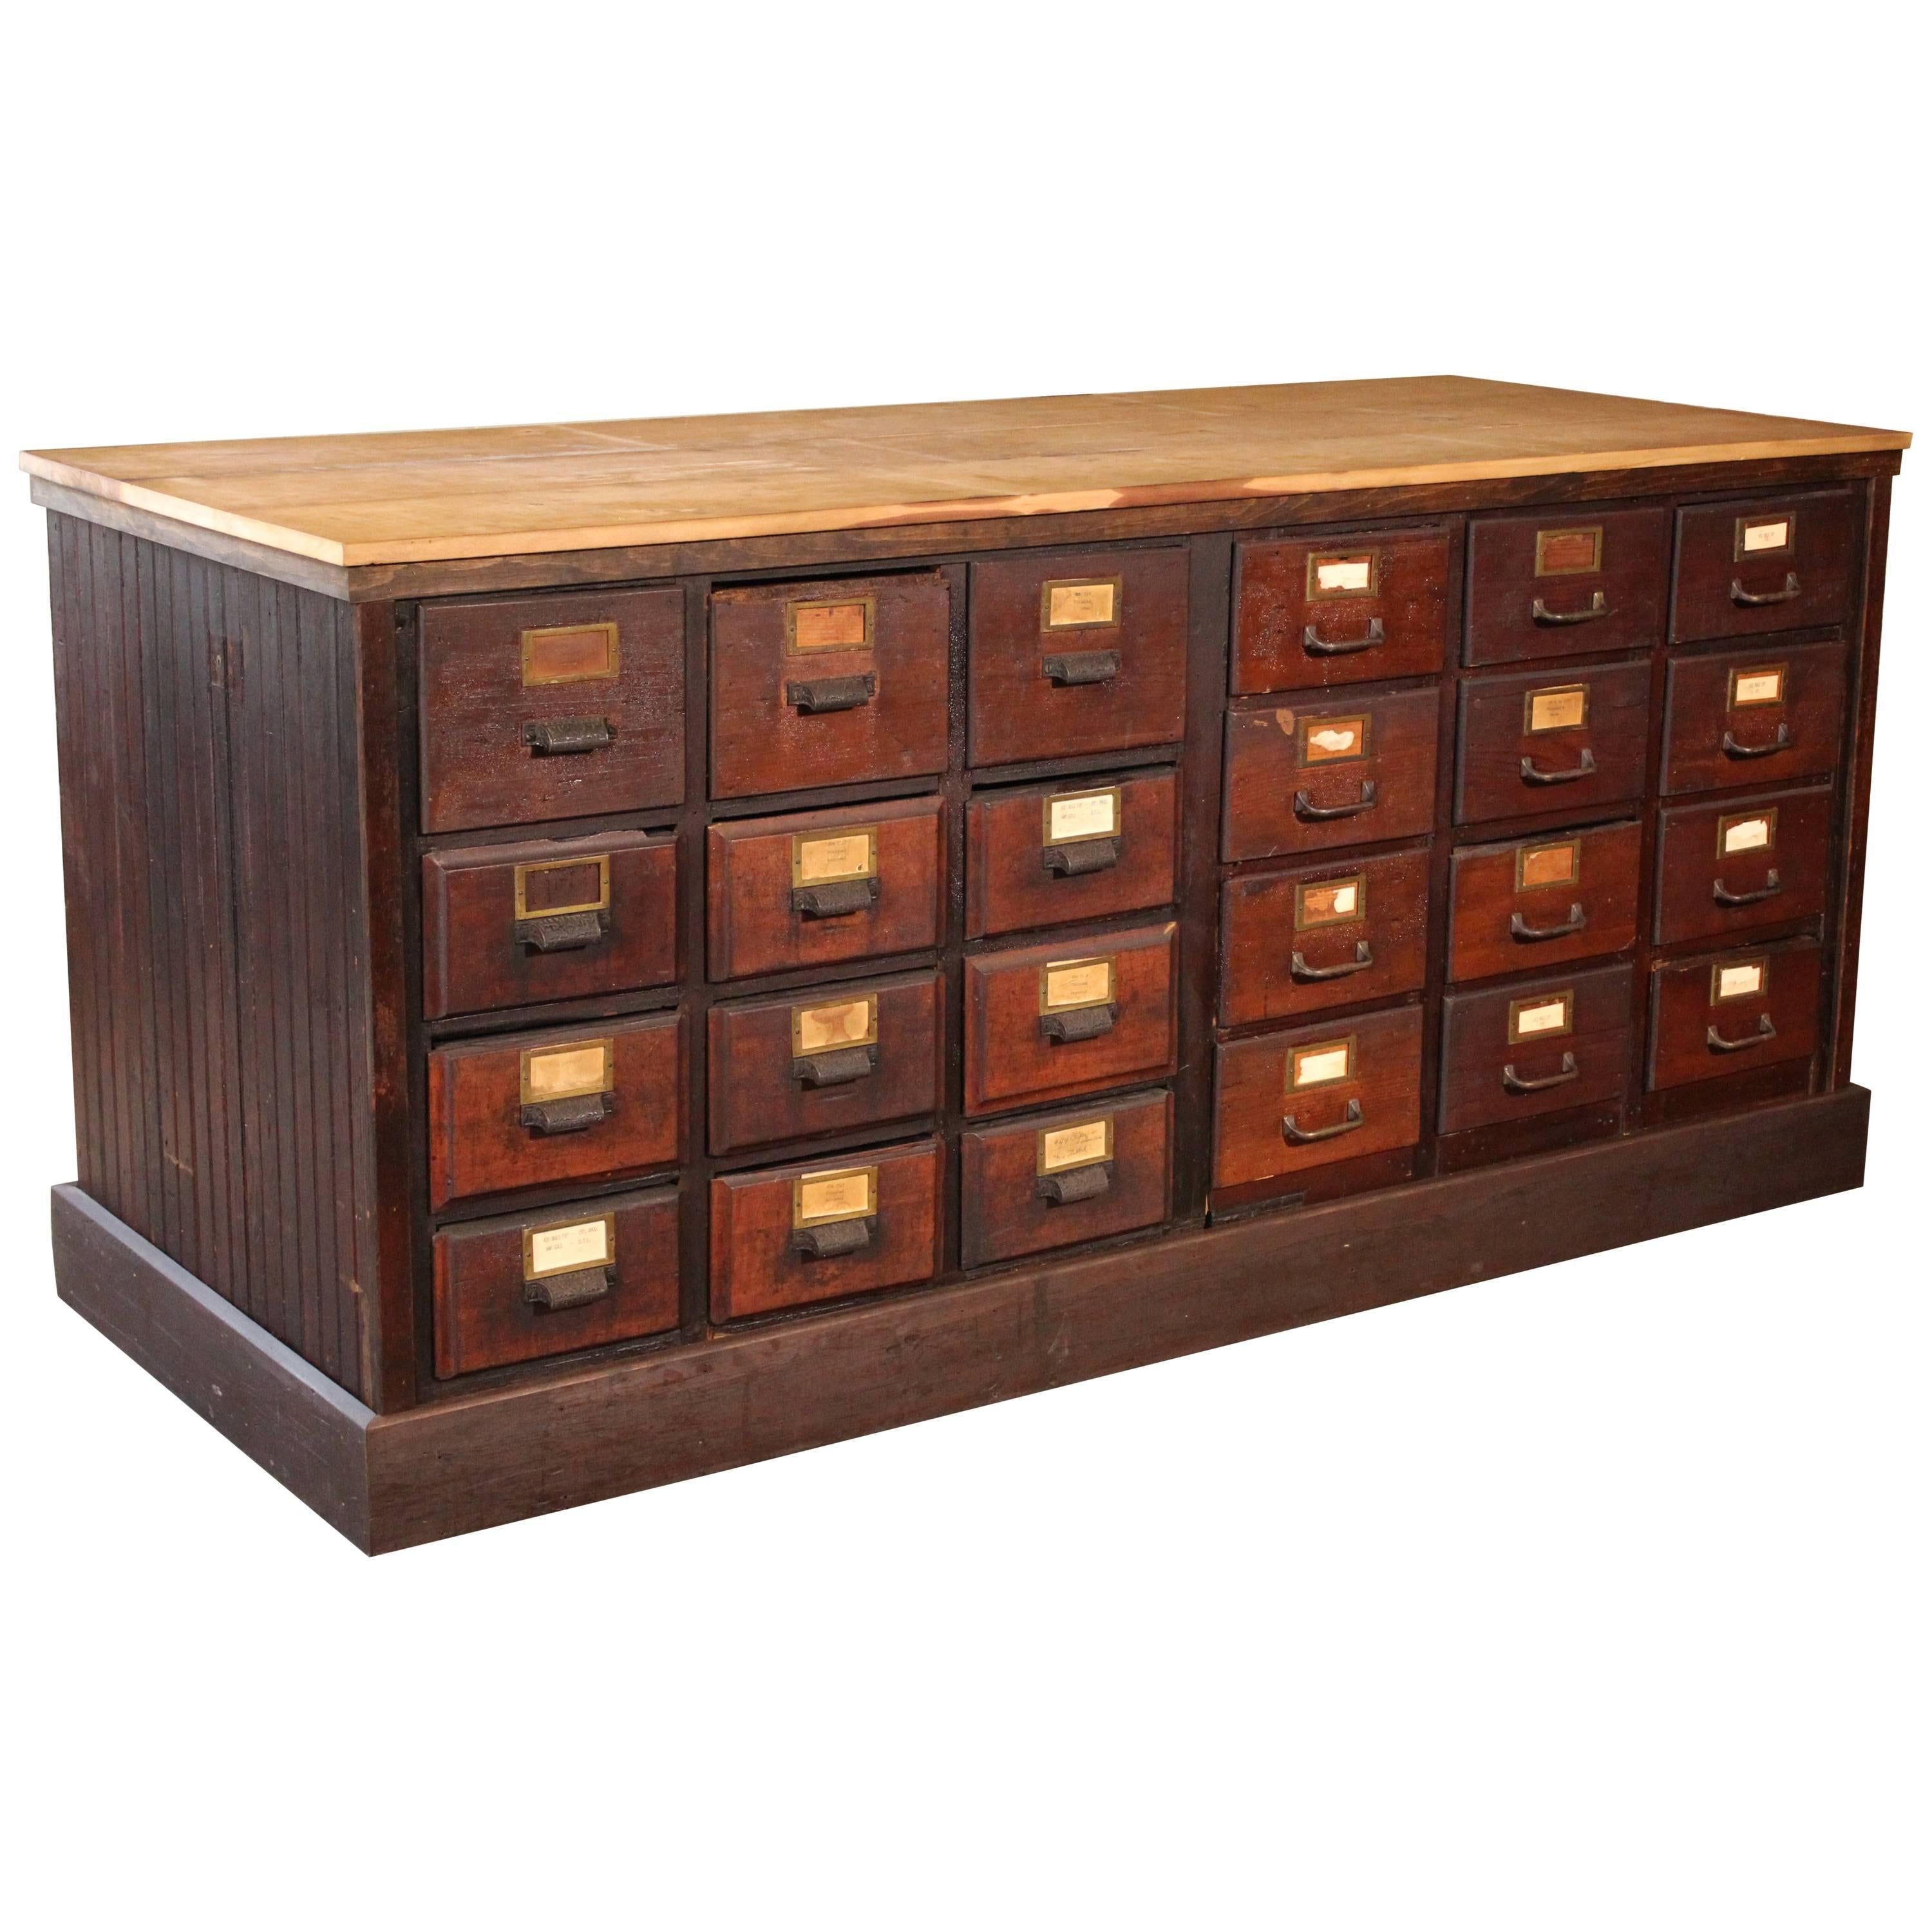 Antique and Vintage Apothecary Cabinets - 211 For Sale at 1stdibs